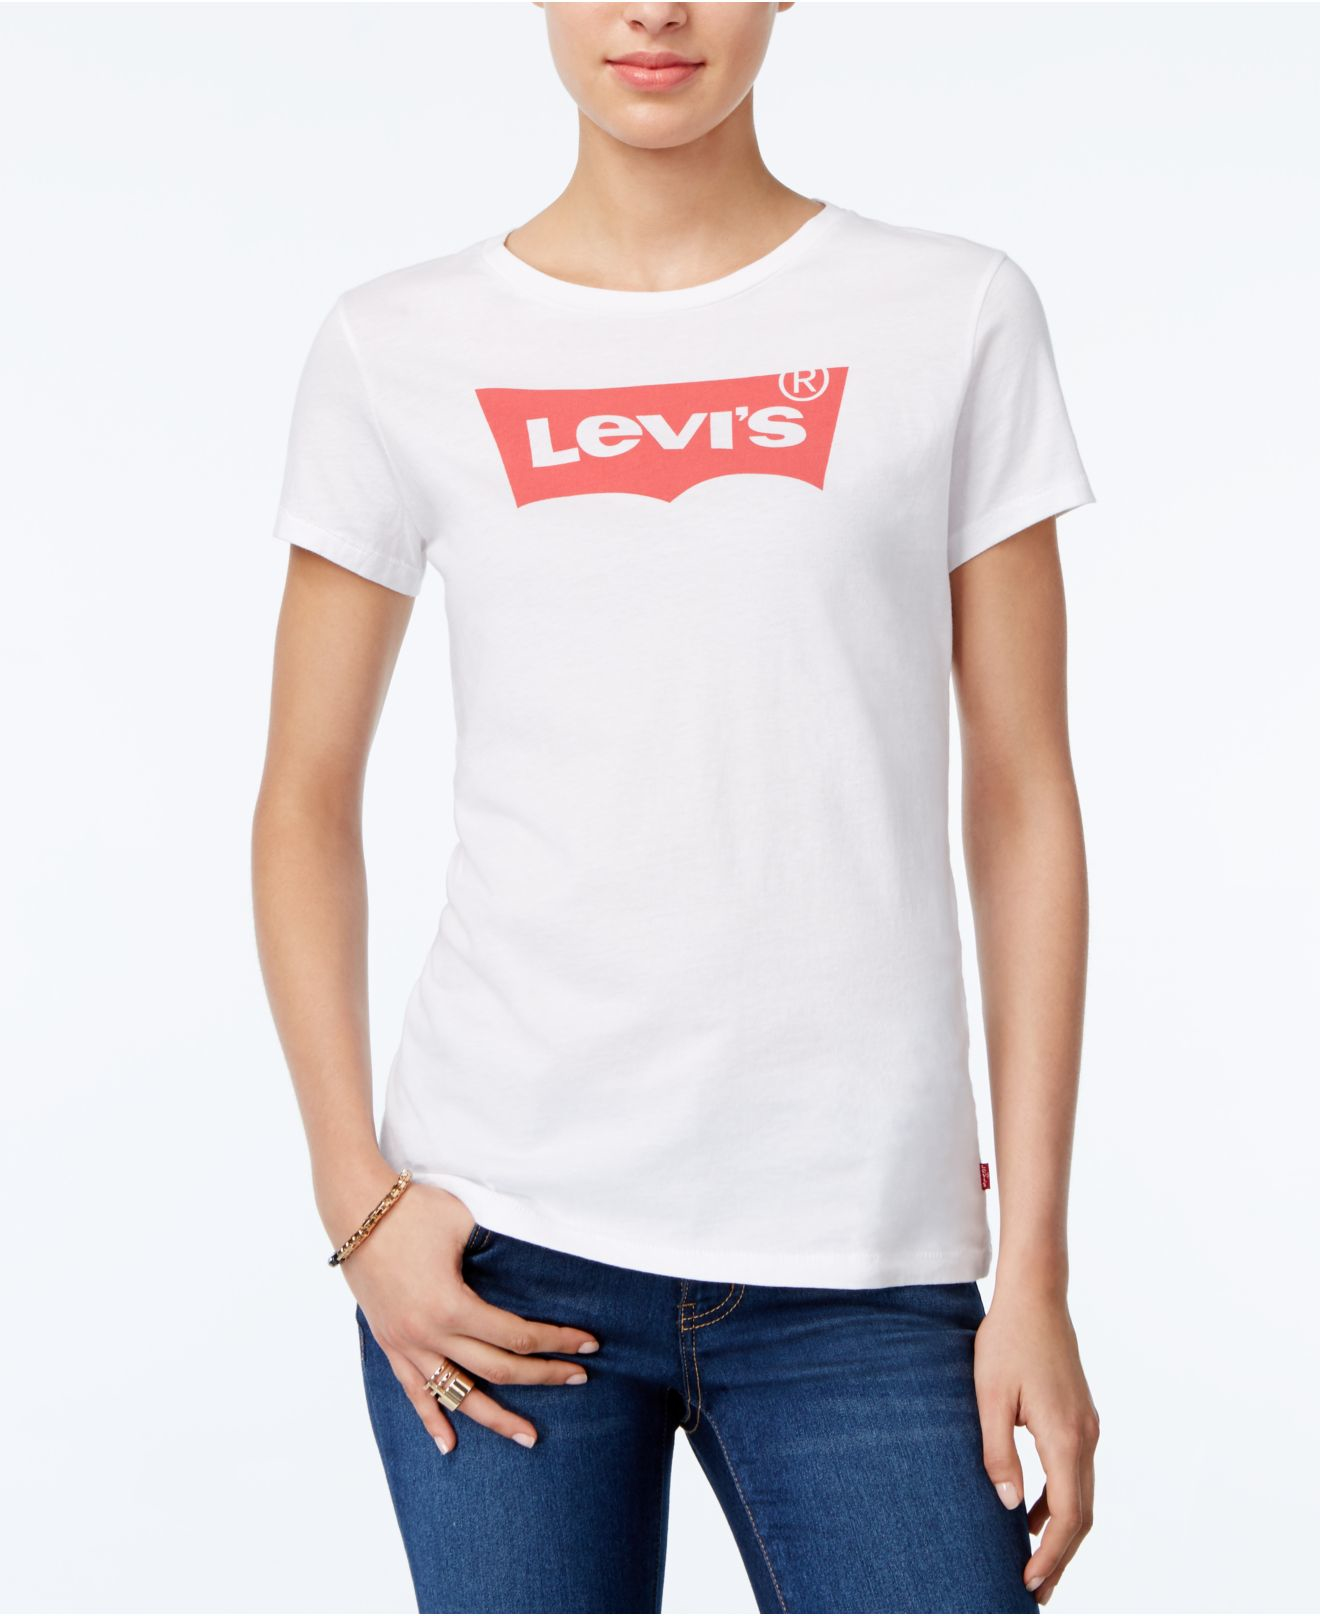 levi 39 s slim logo graphic t shirt in white lyst. Black Bedroom Furniture Sets. Home Design Ideas